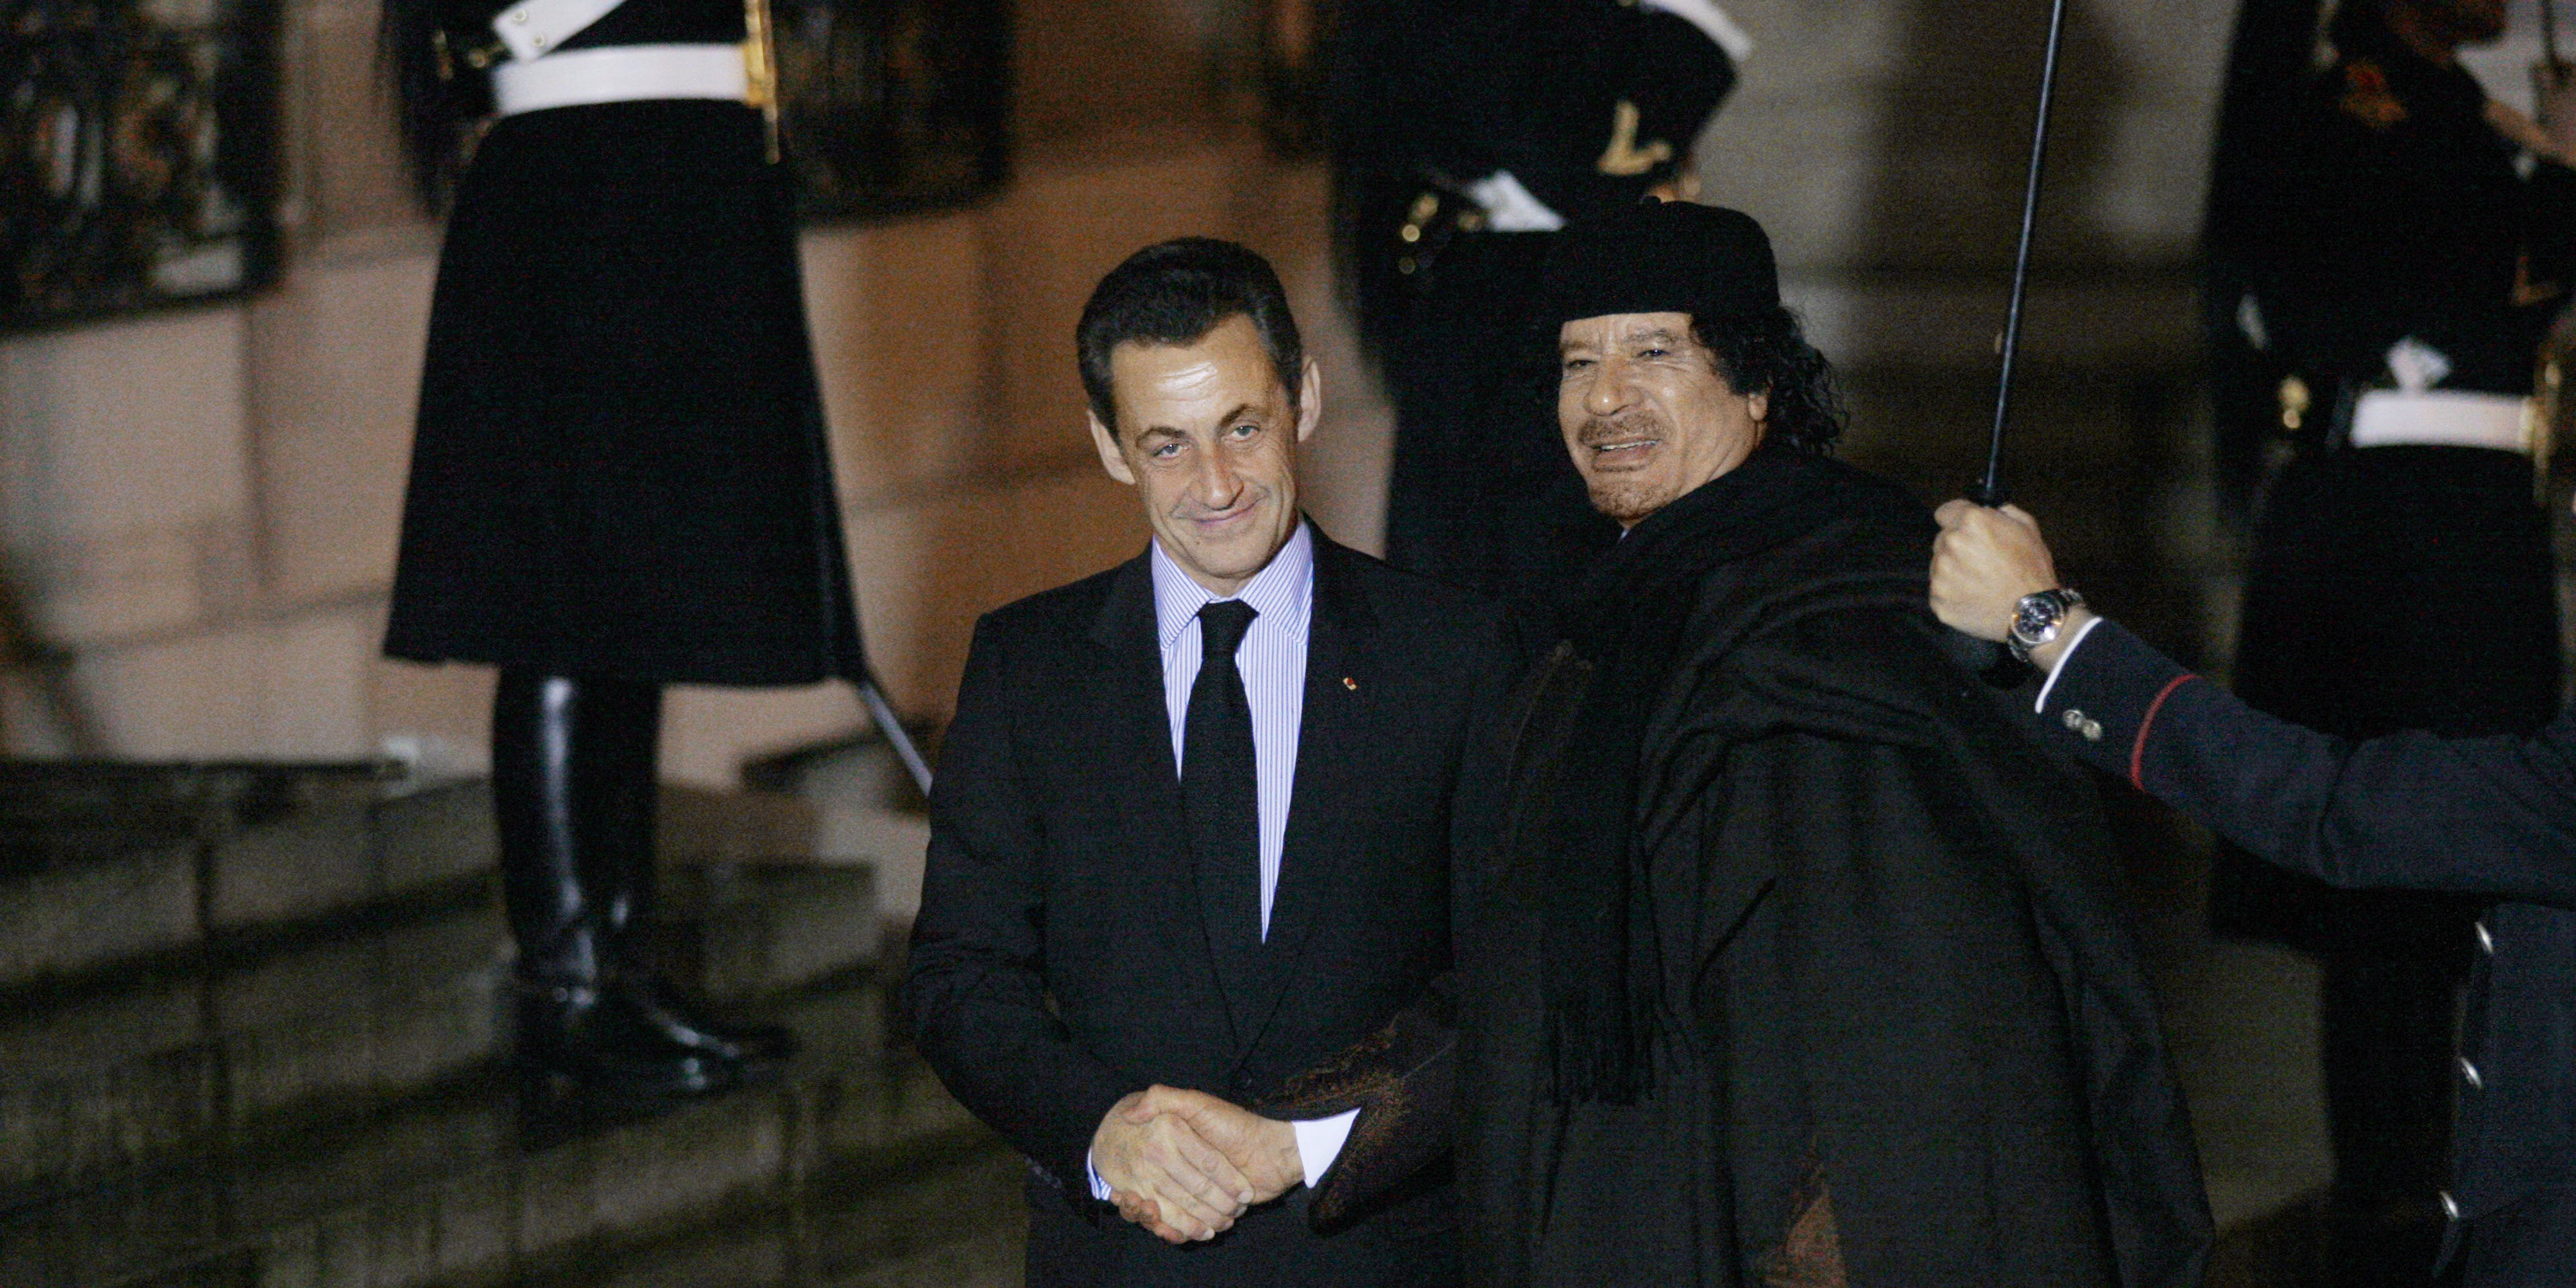 Why Did the U.S. and Its Allies Bomb Libya? Corruption Case Against Sarkozy Sheds New Light on Ousting of Gaddafi.